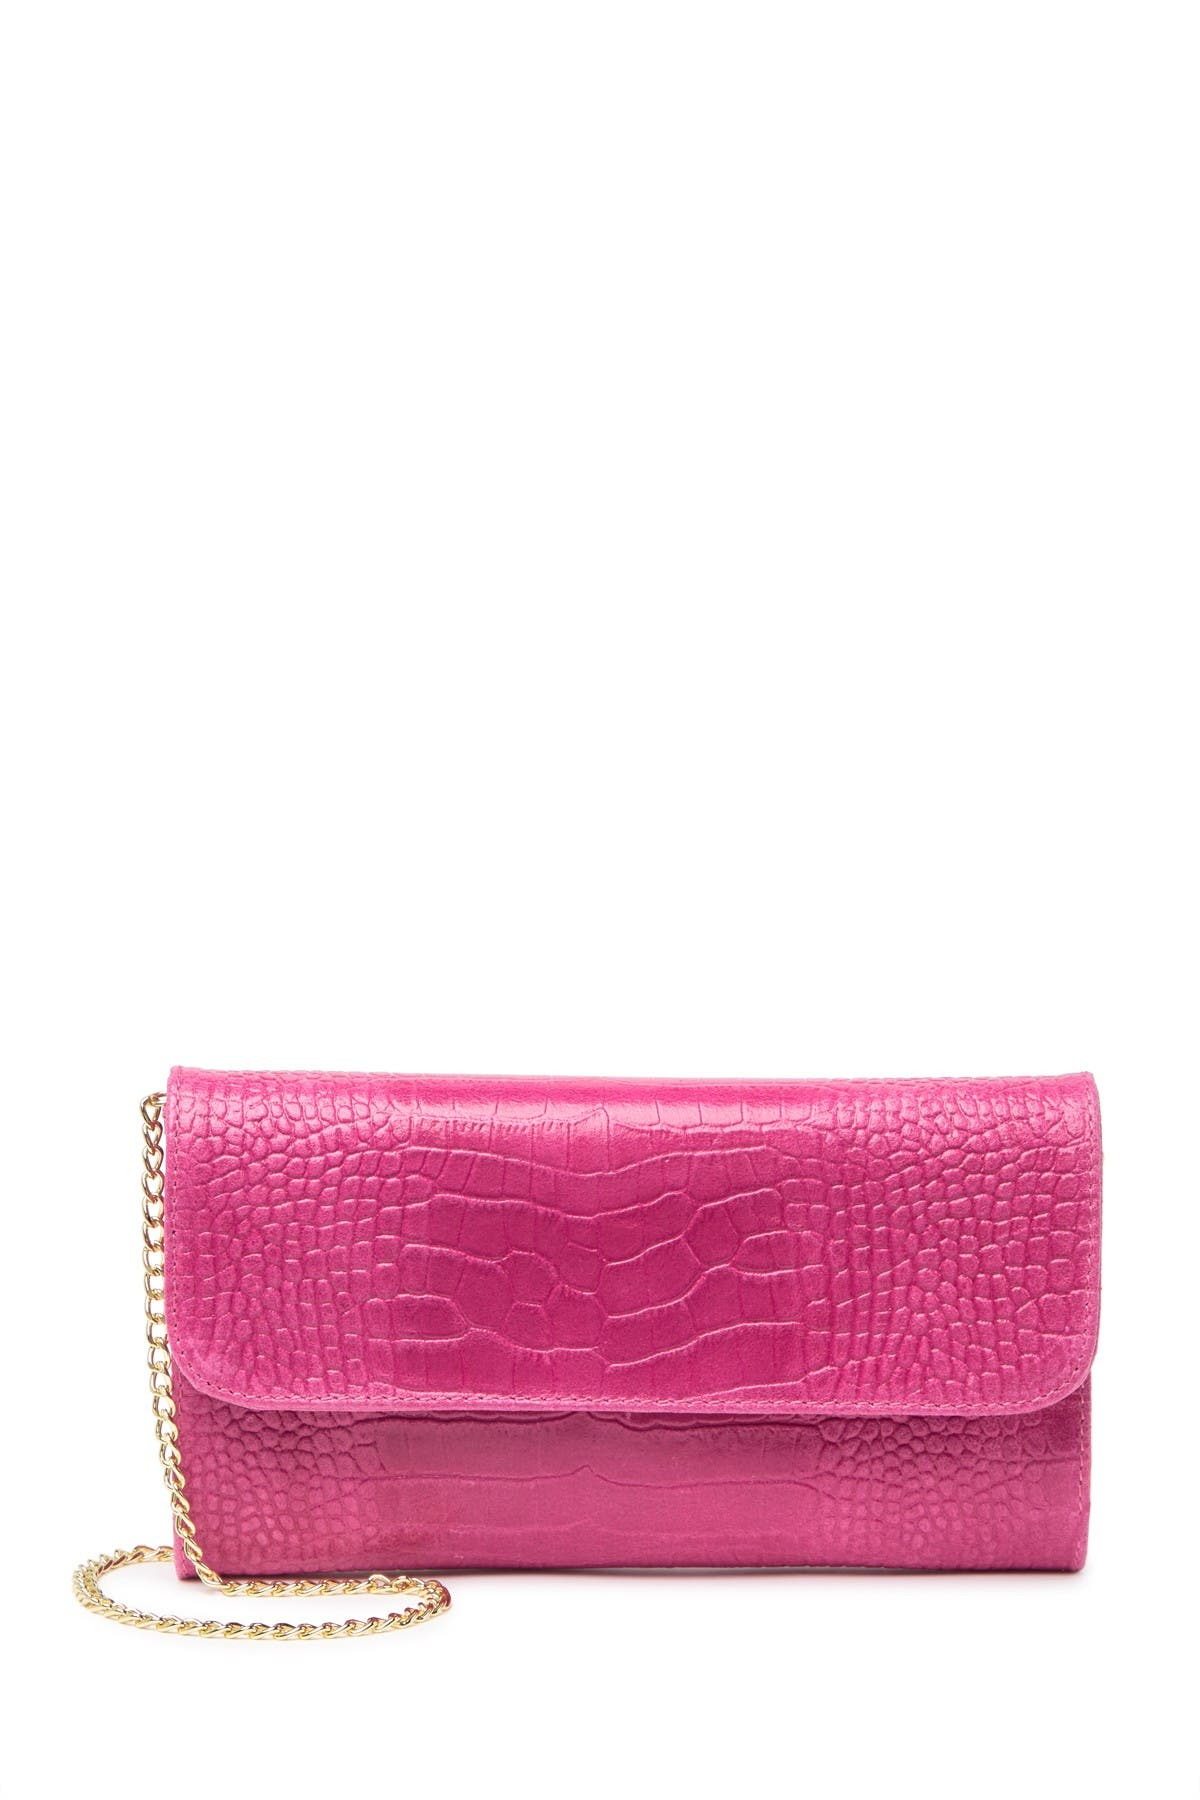 Image of Persaman New York Aleksandra Snake Embossed Crossbody Bag